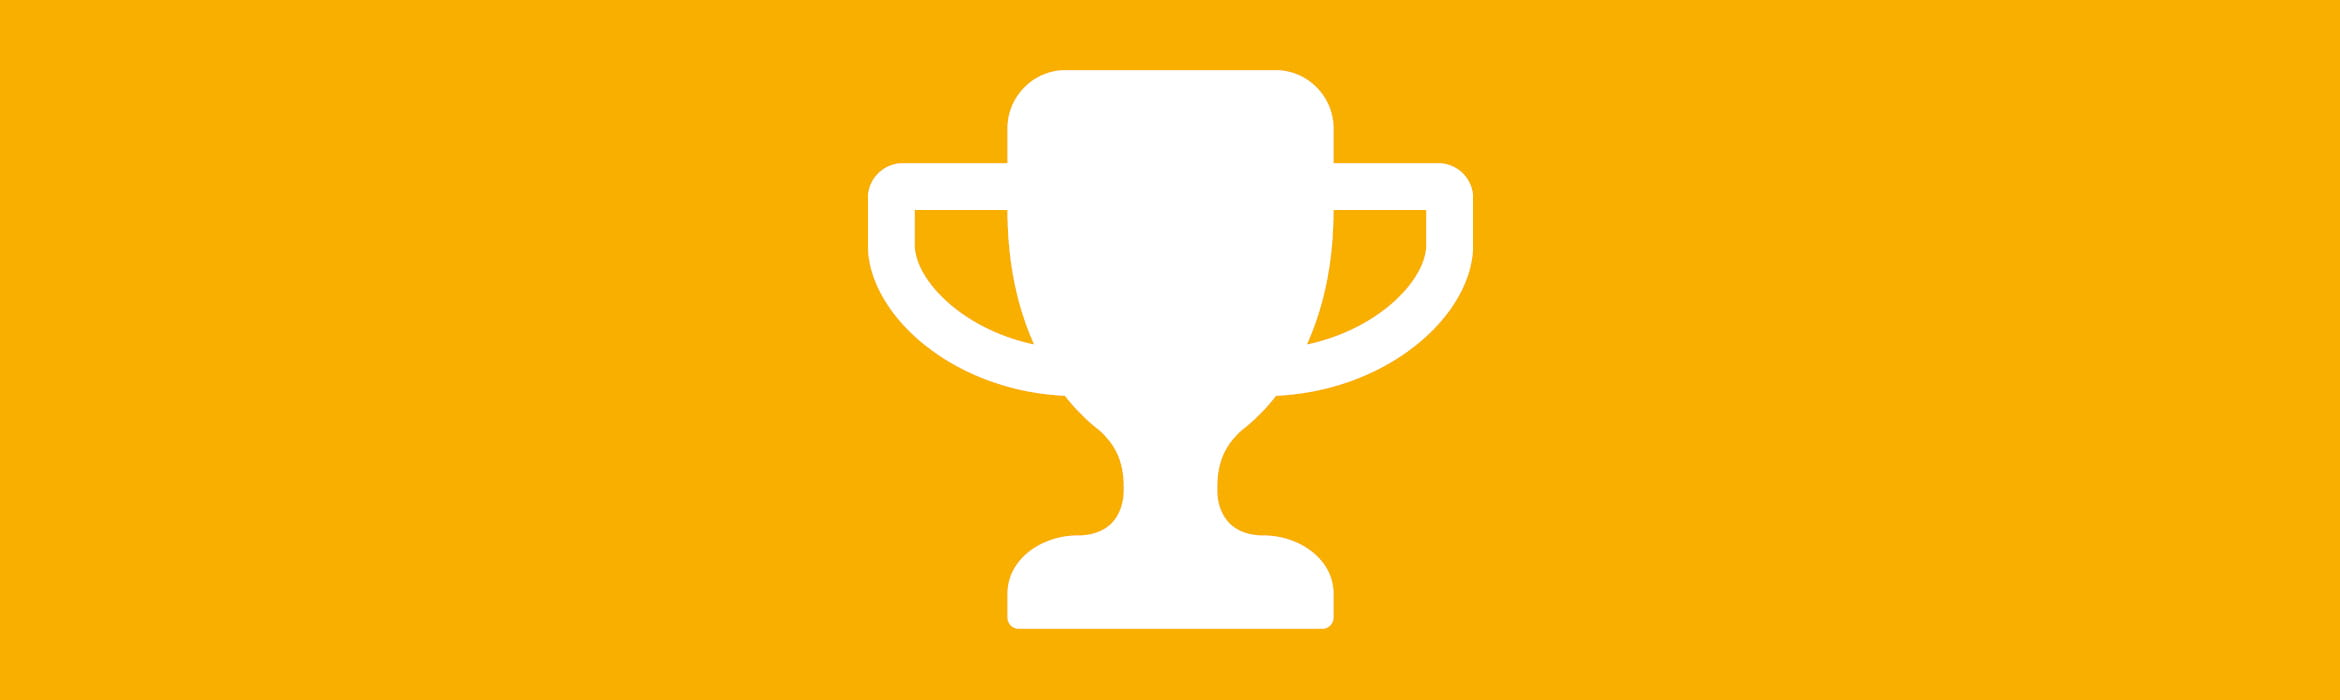 white trophy icon against an amber background